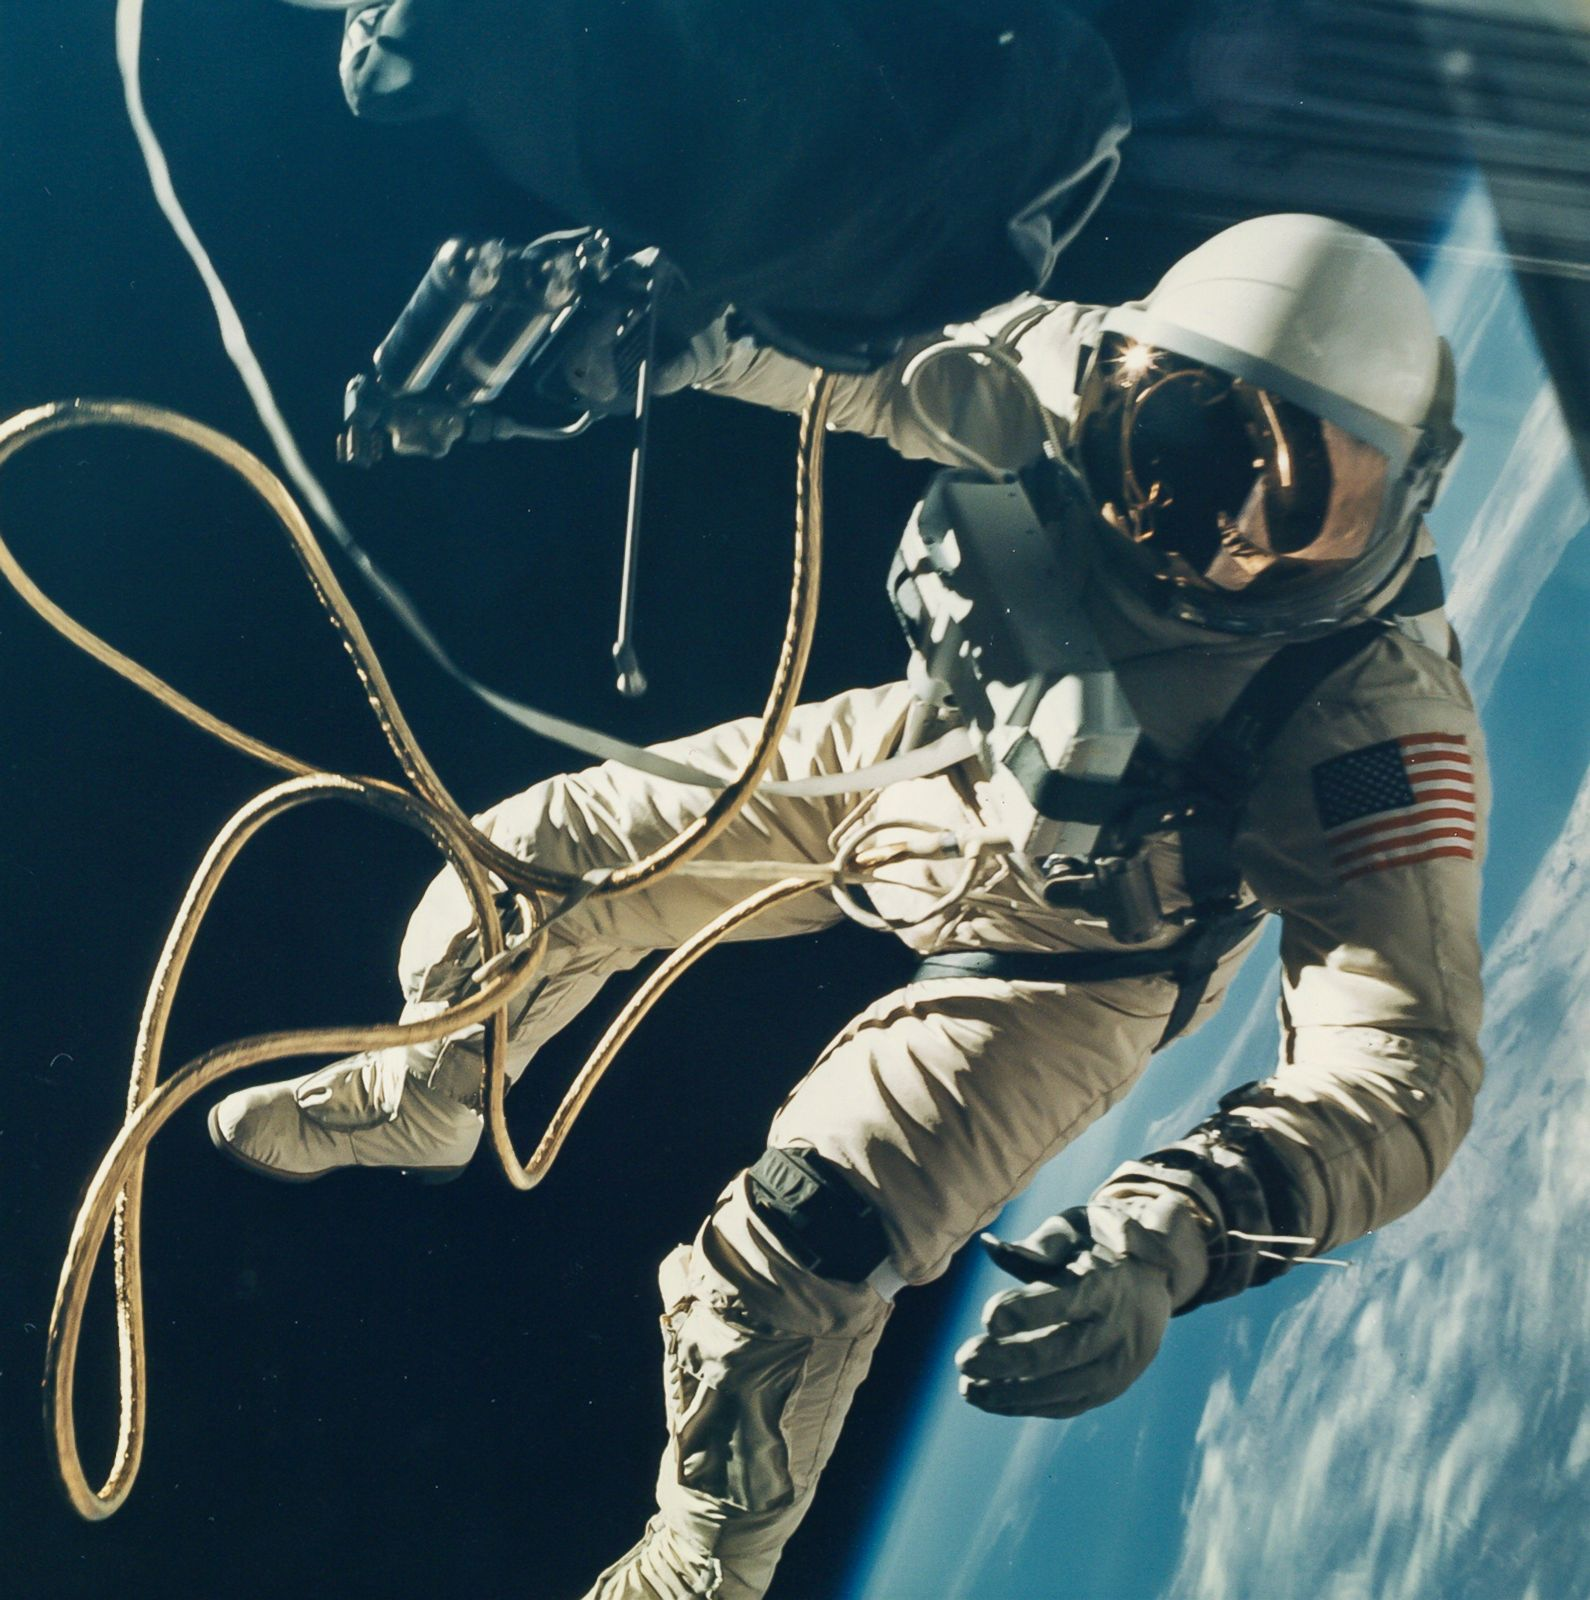 Vintage NASA Photos Up For Auction